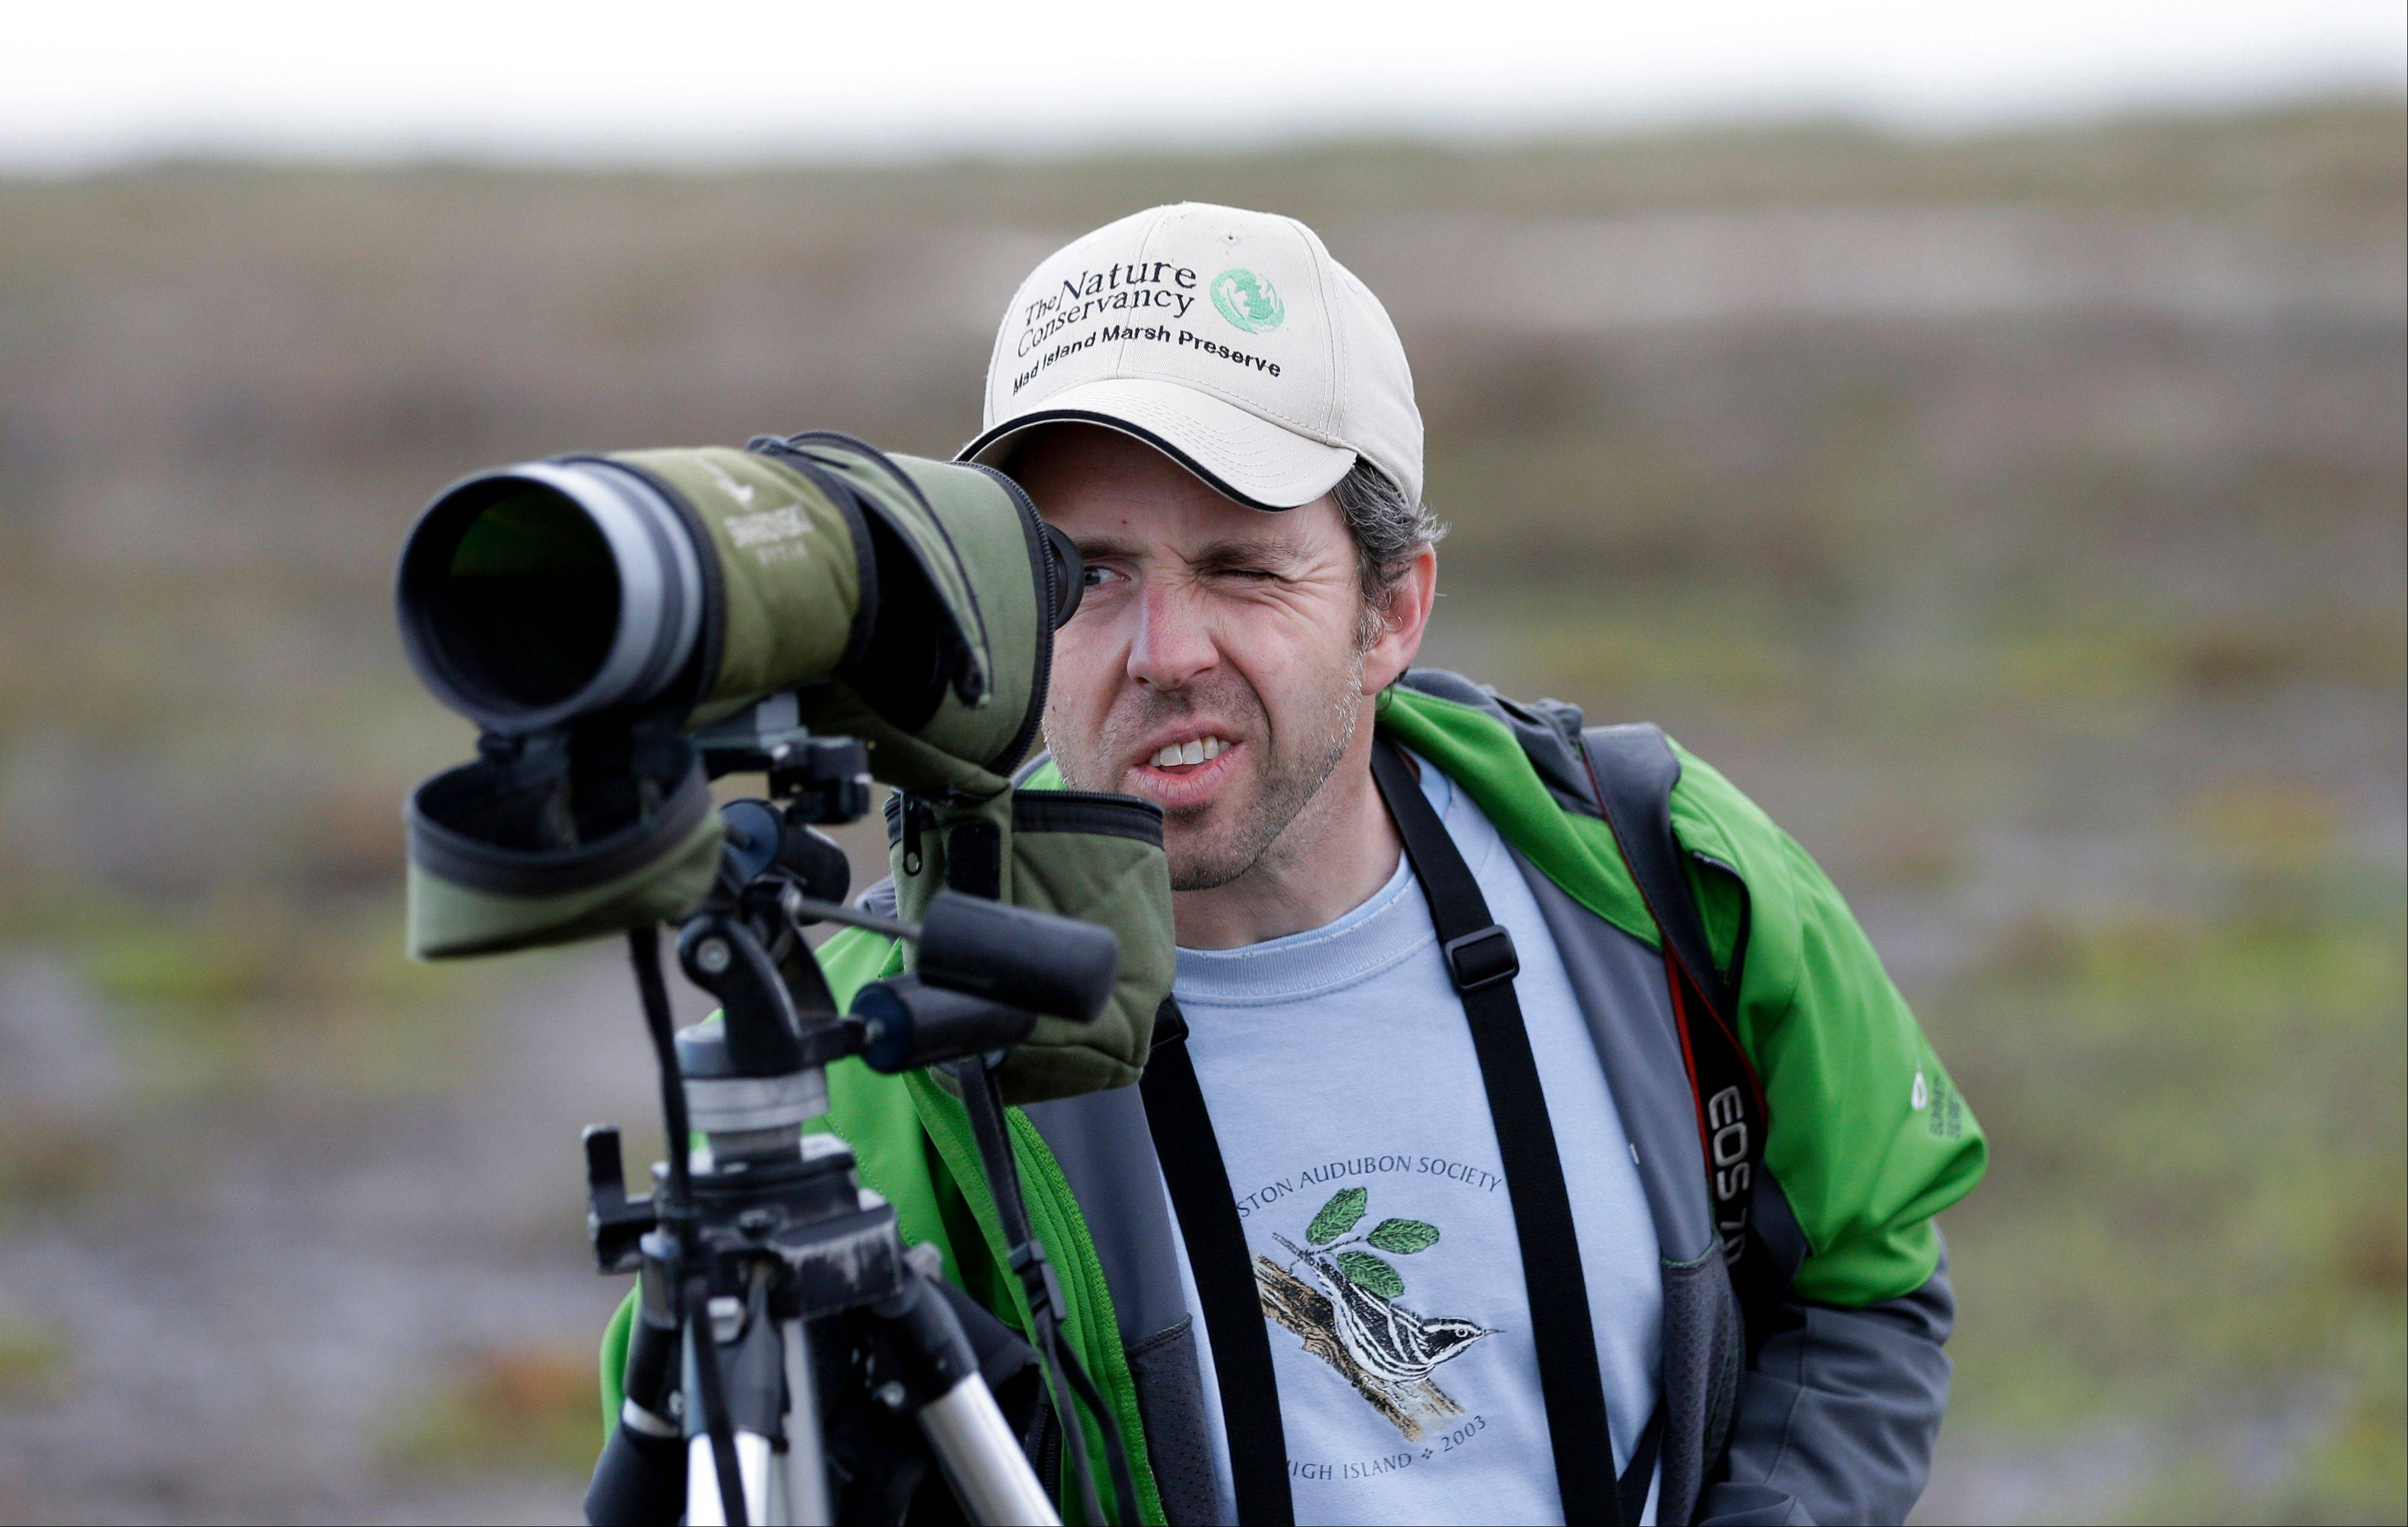 Rich Kostecke, a bird expert and associate director of conservation, research and planning at the Nature Conservancy in Texas, looks through his spotting scope Monday during an annual 24-hour Christmastime ritual to count birds along the Texas Gulf Coast in Mad Island, Texas.